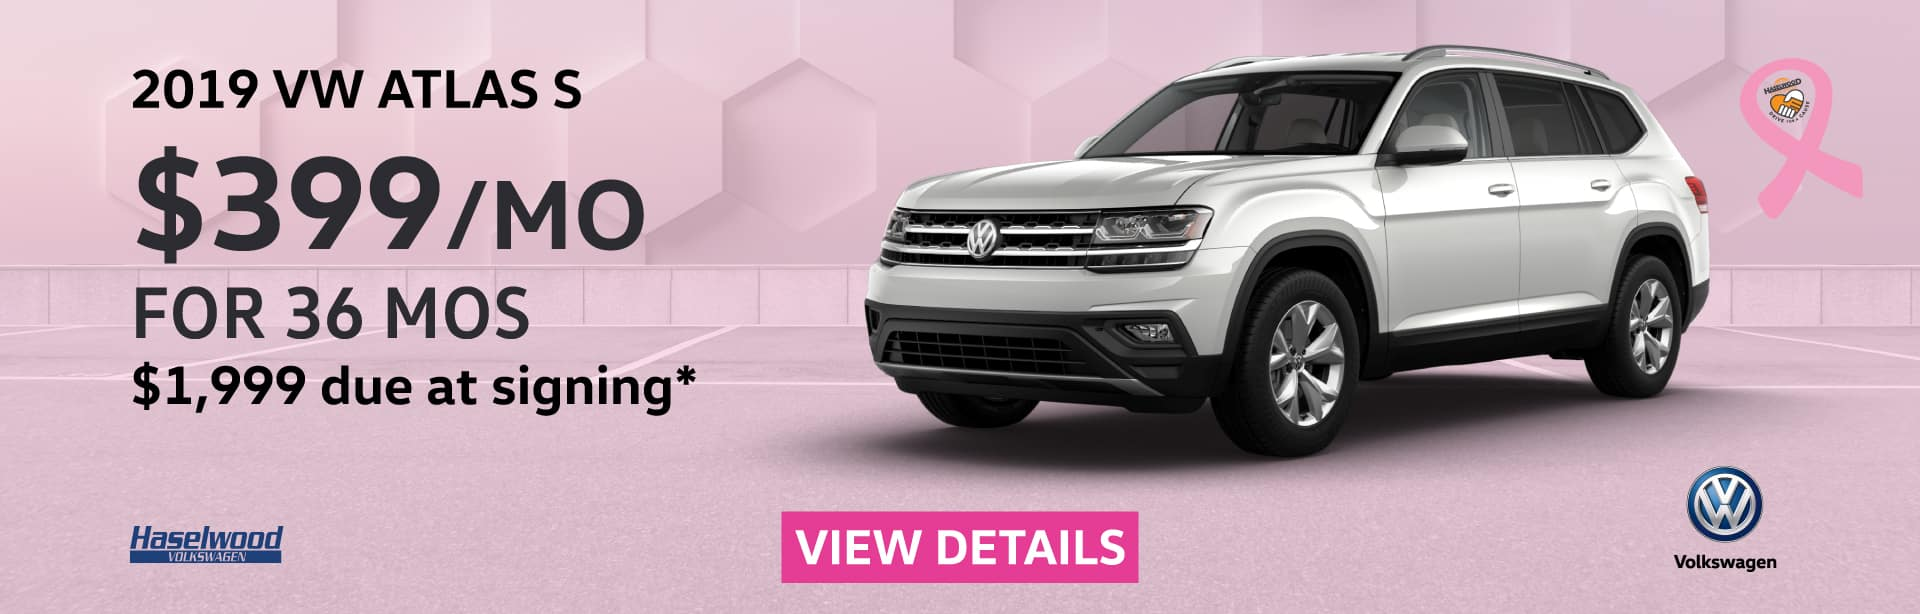 2019 Volkswagen Atlas S  $399/mo. for 36 months $1,999 Due at Signing    * Offer valid on 2019 Volkswagen Atlas S. $399 per mo. for 36 months. Lease with $1,999 due at signing; includes a $595 acquisition fee, lease through Volkswagen Credit. No security deposit required. Valid on VIN: 1V2GR2CA9KC594866, 1V2GR2CA8KC600897. For highly qualified customers on approved top tier credit through Volkswagen Credit. Lessee responsible for maintenance, excessive wear/tear and 20¢/mi over 10K mi/yr. Excludes state and local taxes, tags, registration and title, insurance and dealer charges. Subject to credit approval. 36 monthly payments required. Monthly lease payment based on MSRP of $36,010 and destination charges less a suggested dealer contribution resulting in a Gross capitalized cost of $35,052. Cap cost reduction: $958. A negotiable dealer documentary service fee of up to $150 may be added to the sale price or capitalized cost. See dealer for complete details and restrictions. 6 years/72,000 miles (whichever occurs first). New Vehicle Limited Warranty on MY2018 and newer VW vehicles, excluding e-Golf. See owner's literature or dealer for warranty exclusions and limitations. Exp. 11/1/2019.